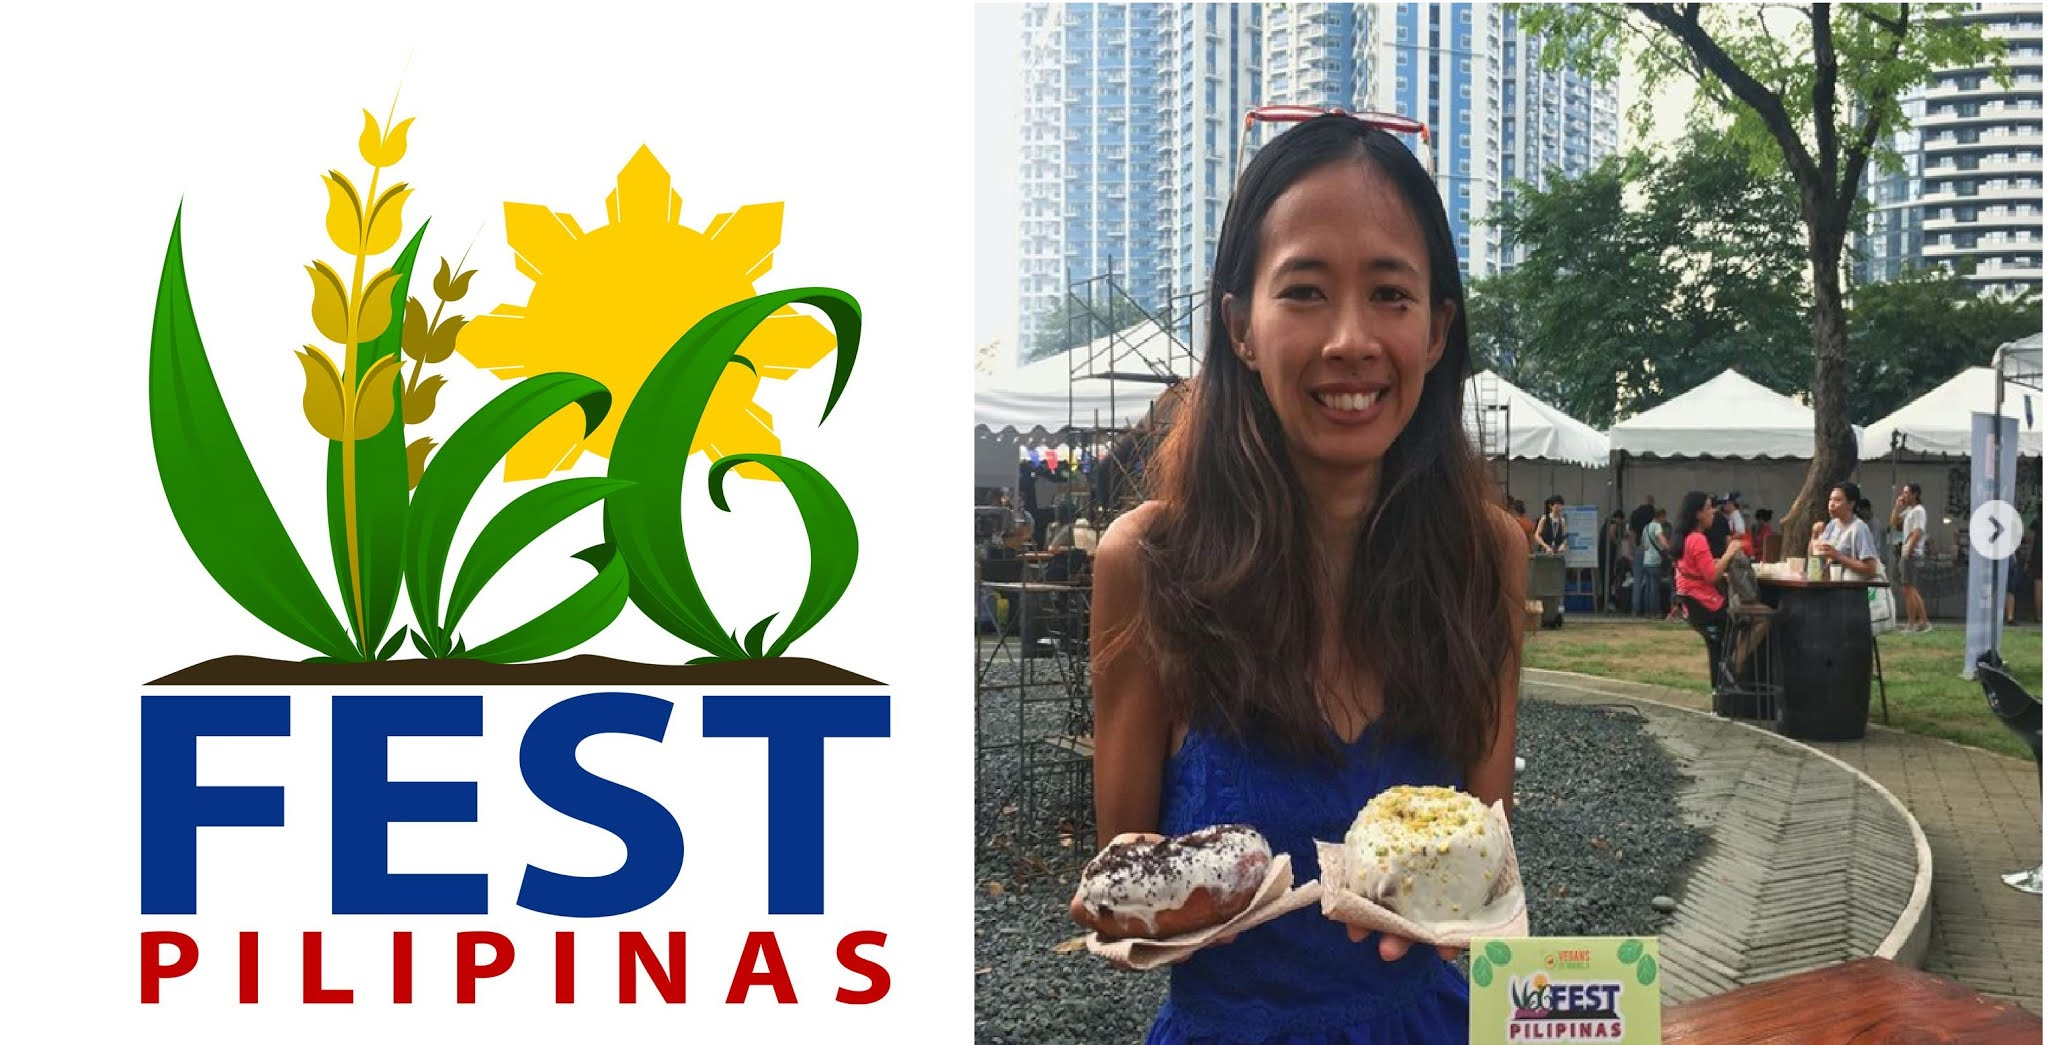 vegfest pilipinas 2020 list of merchants